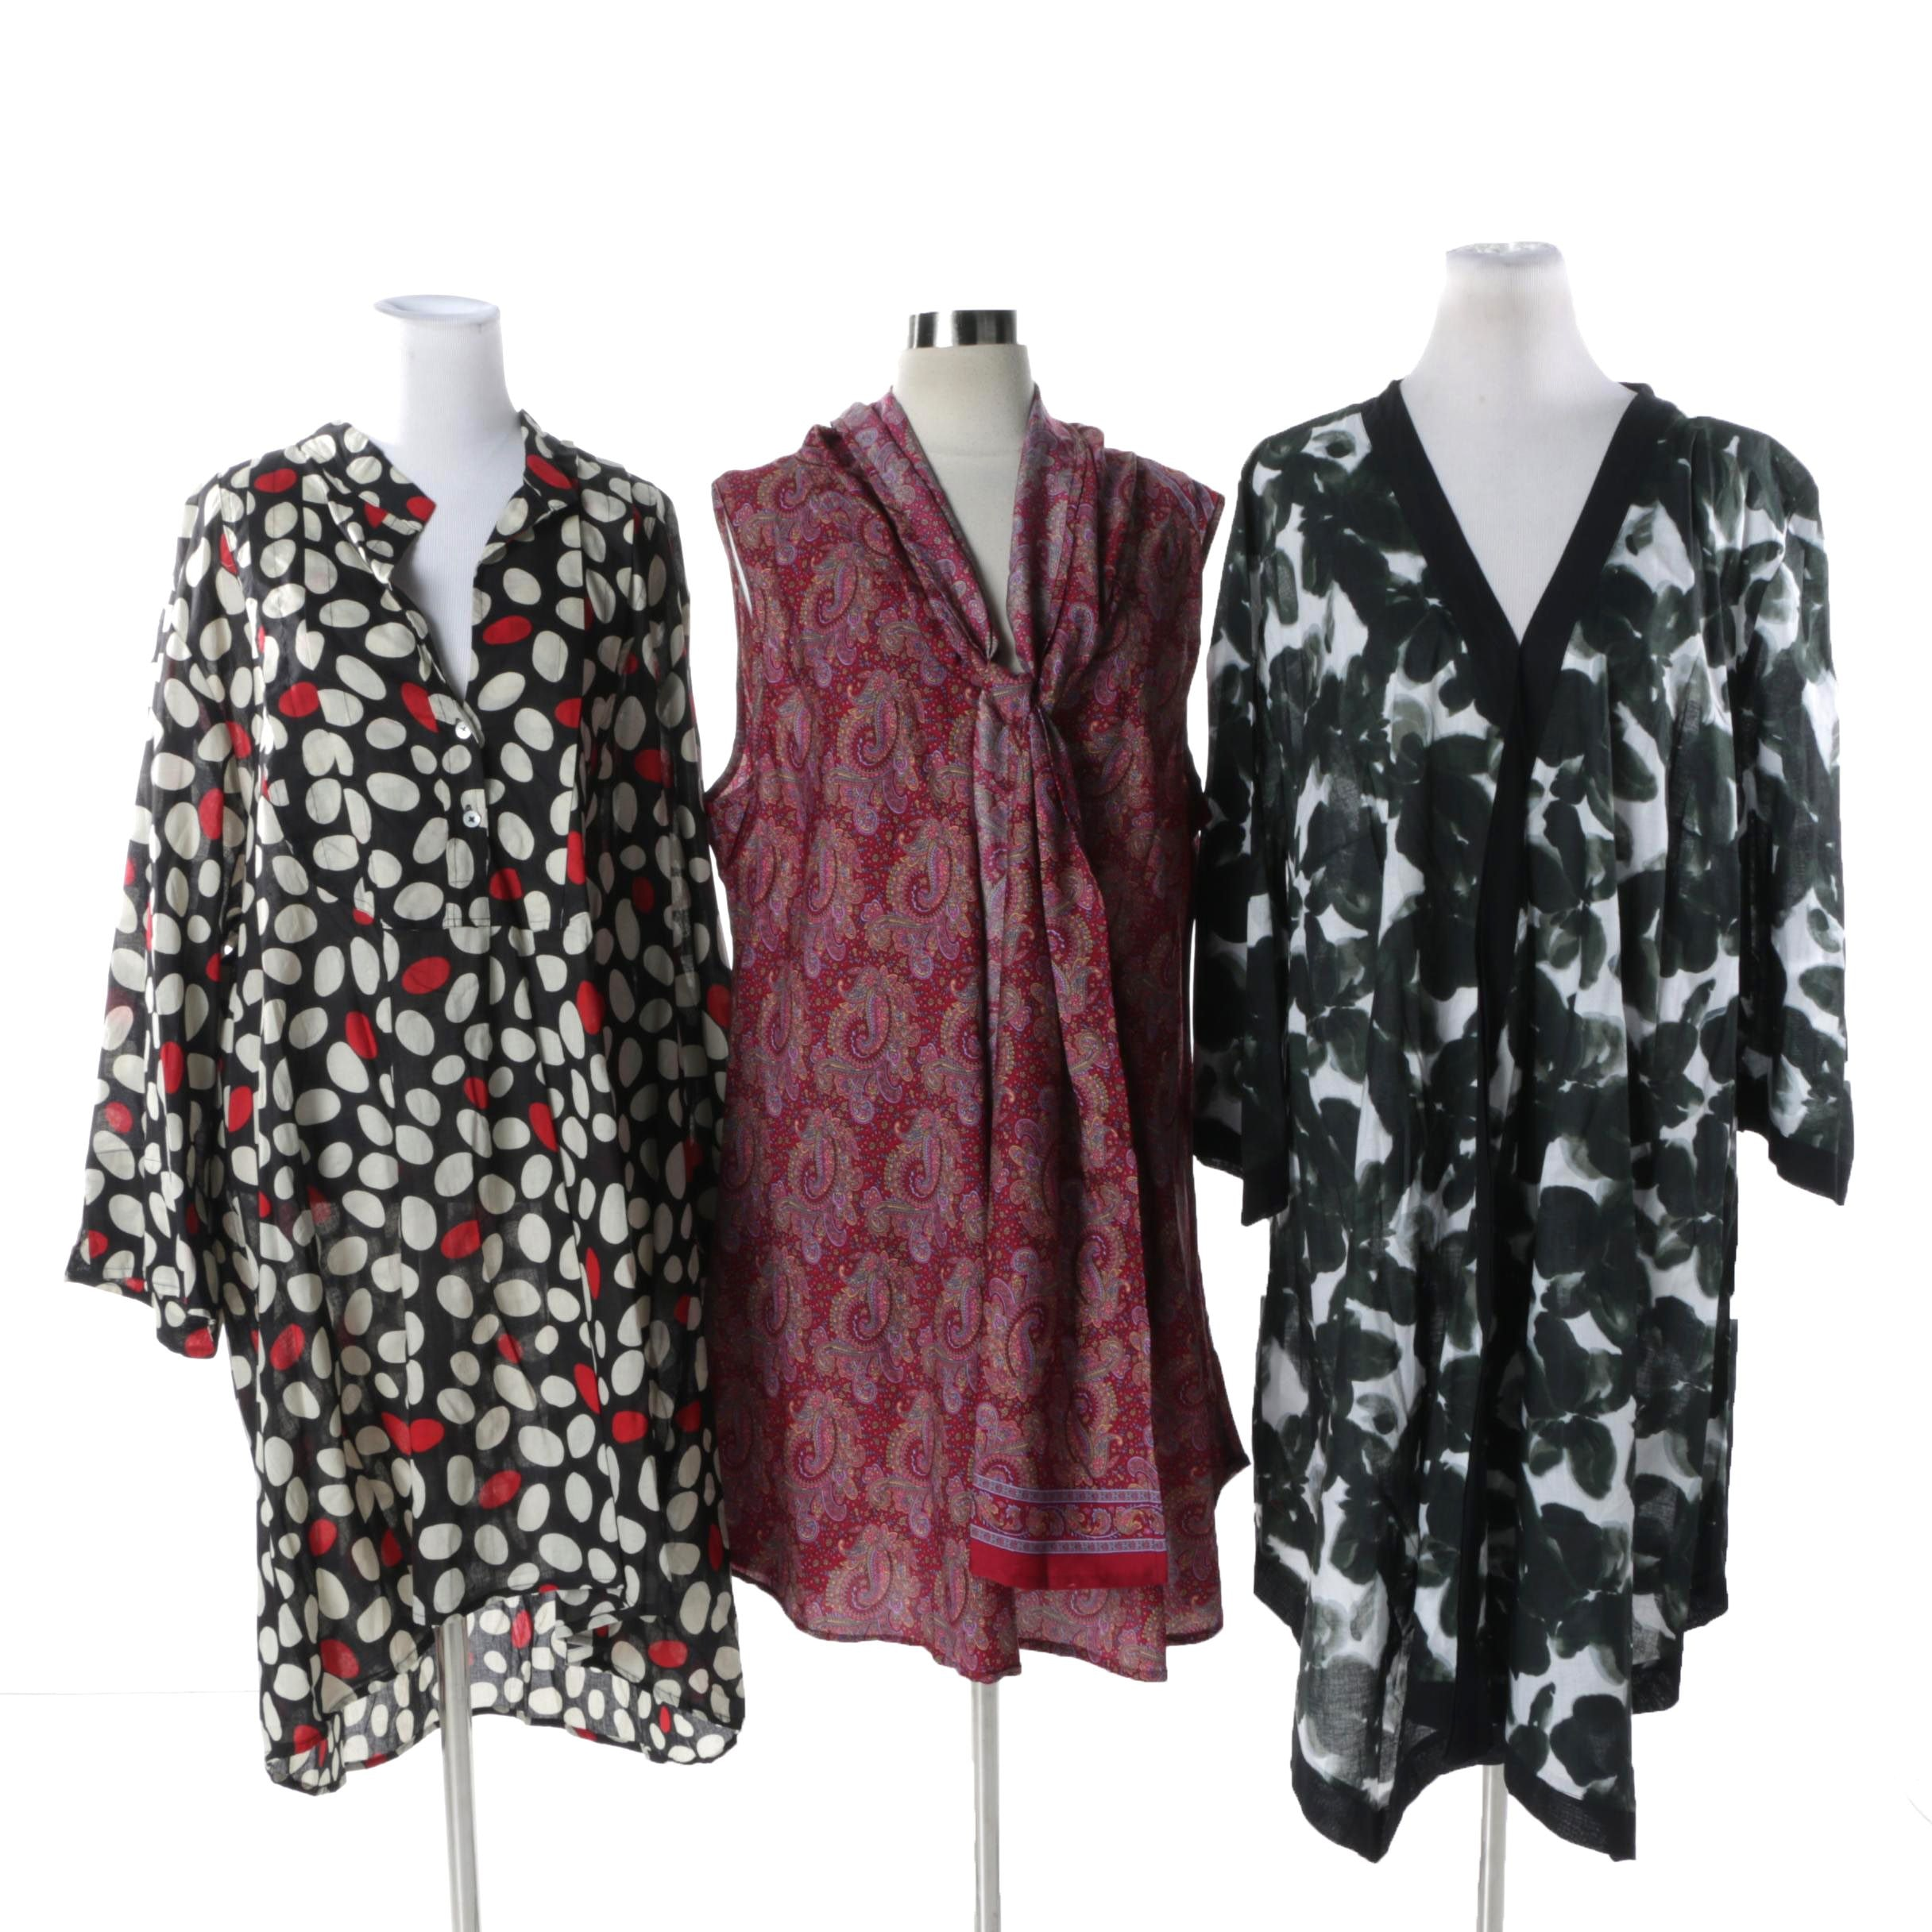 Aller Simplement 3X Dresses and Tunic